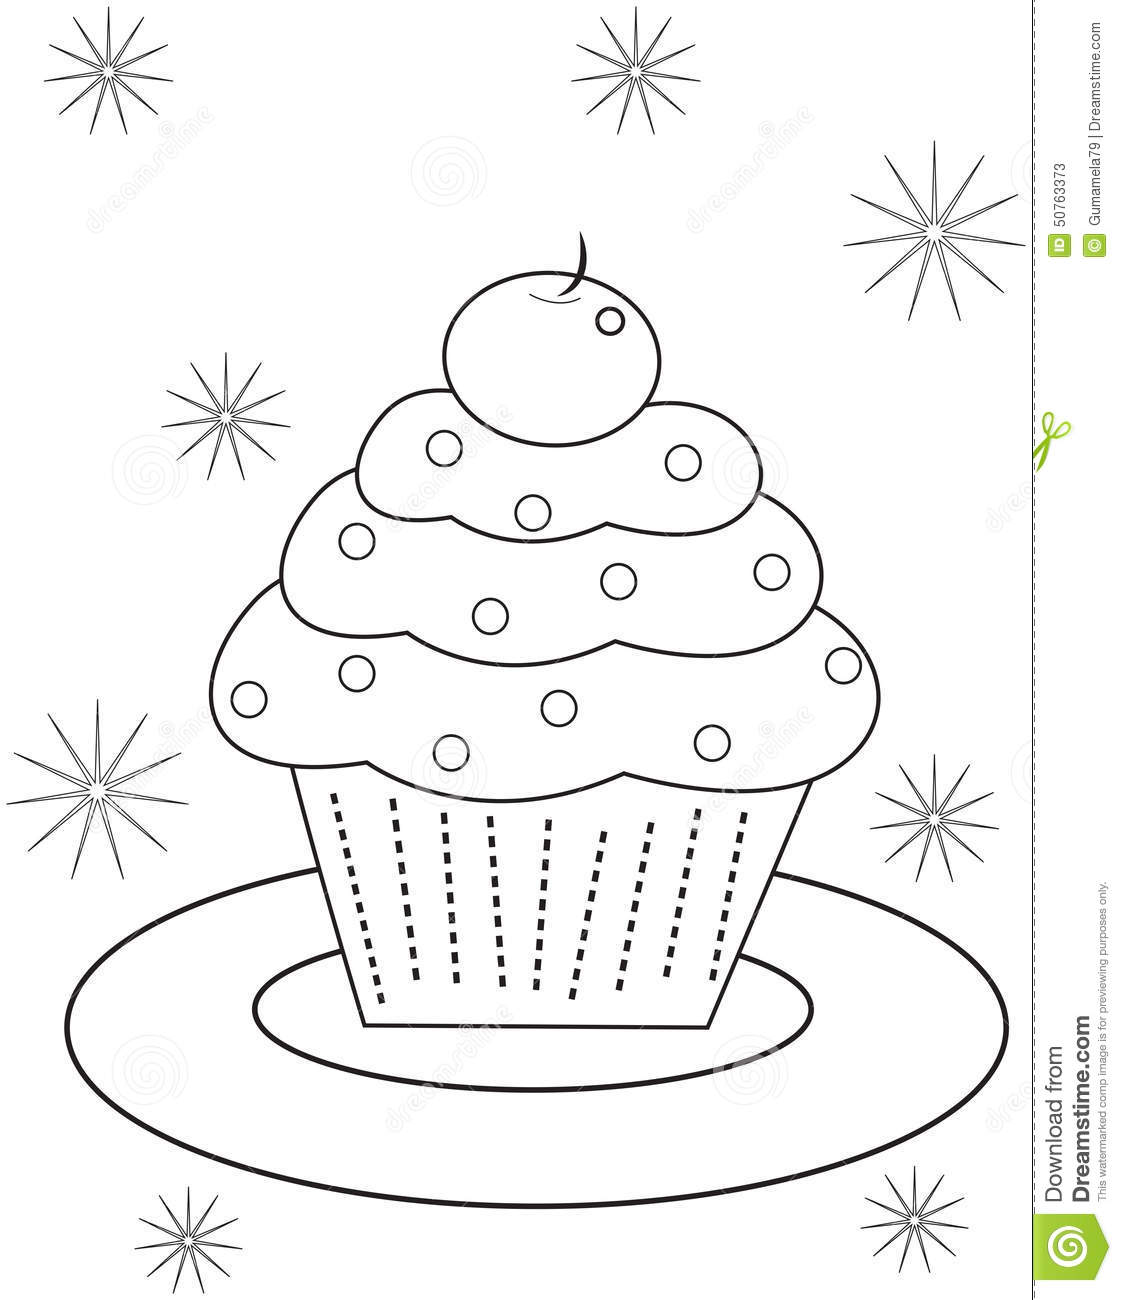 Cupcake Coloring Page Useful As Book For Kids